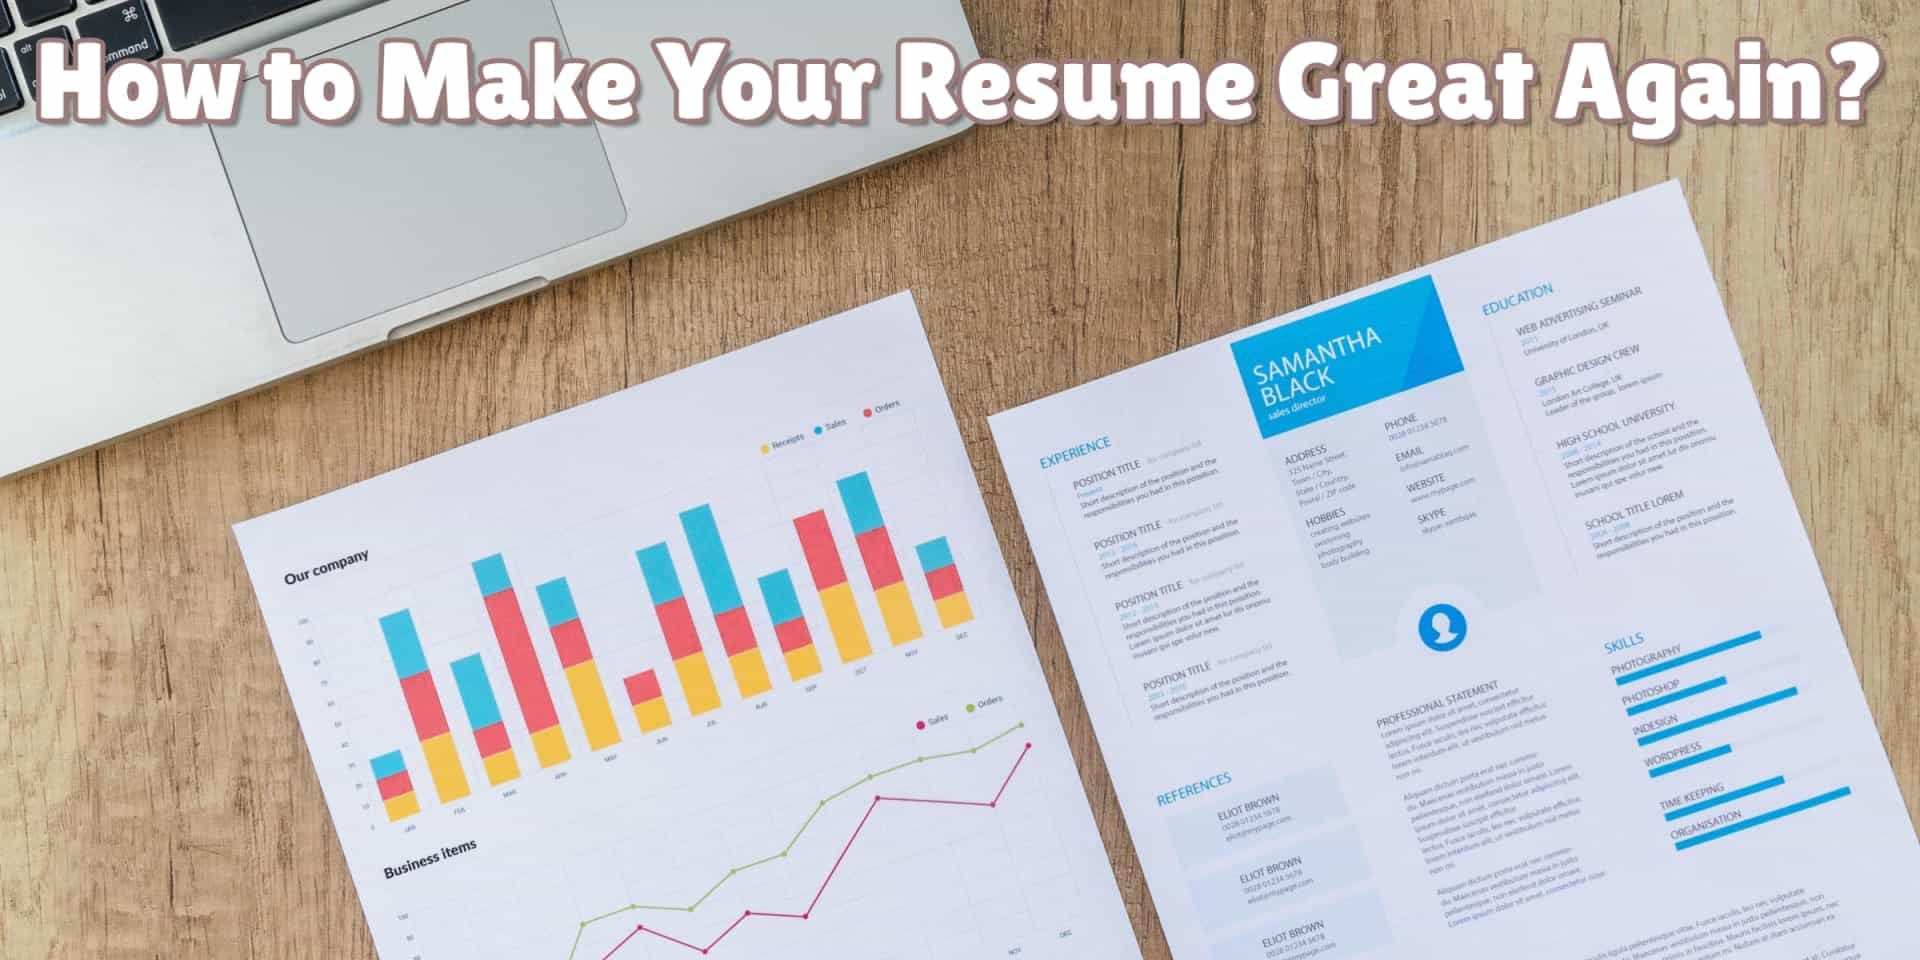 How to Make Your Resume Great Again Resume, Online